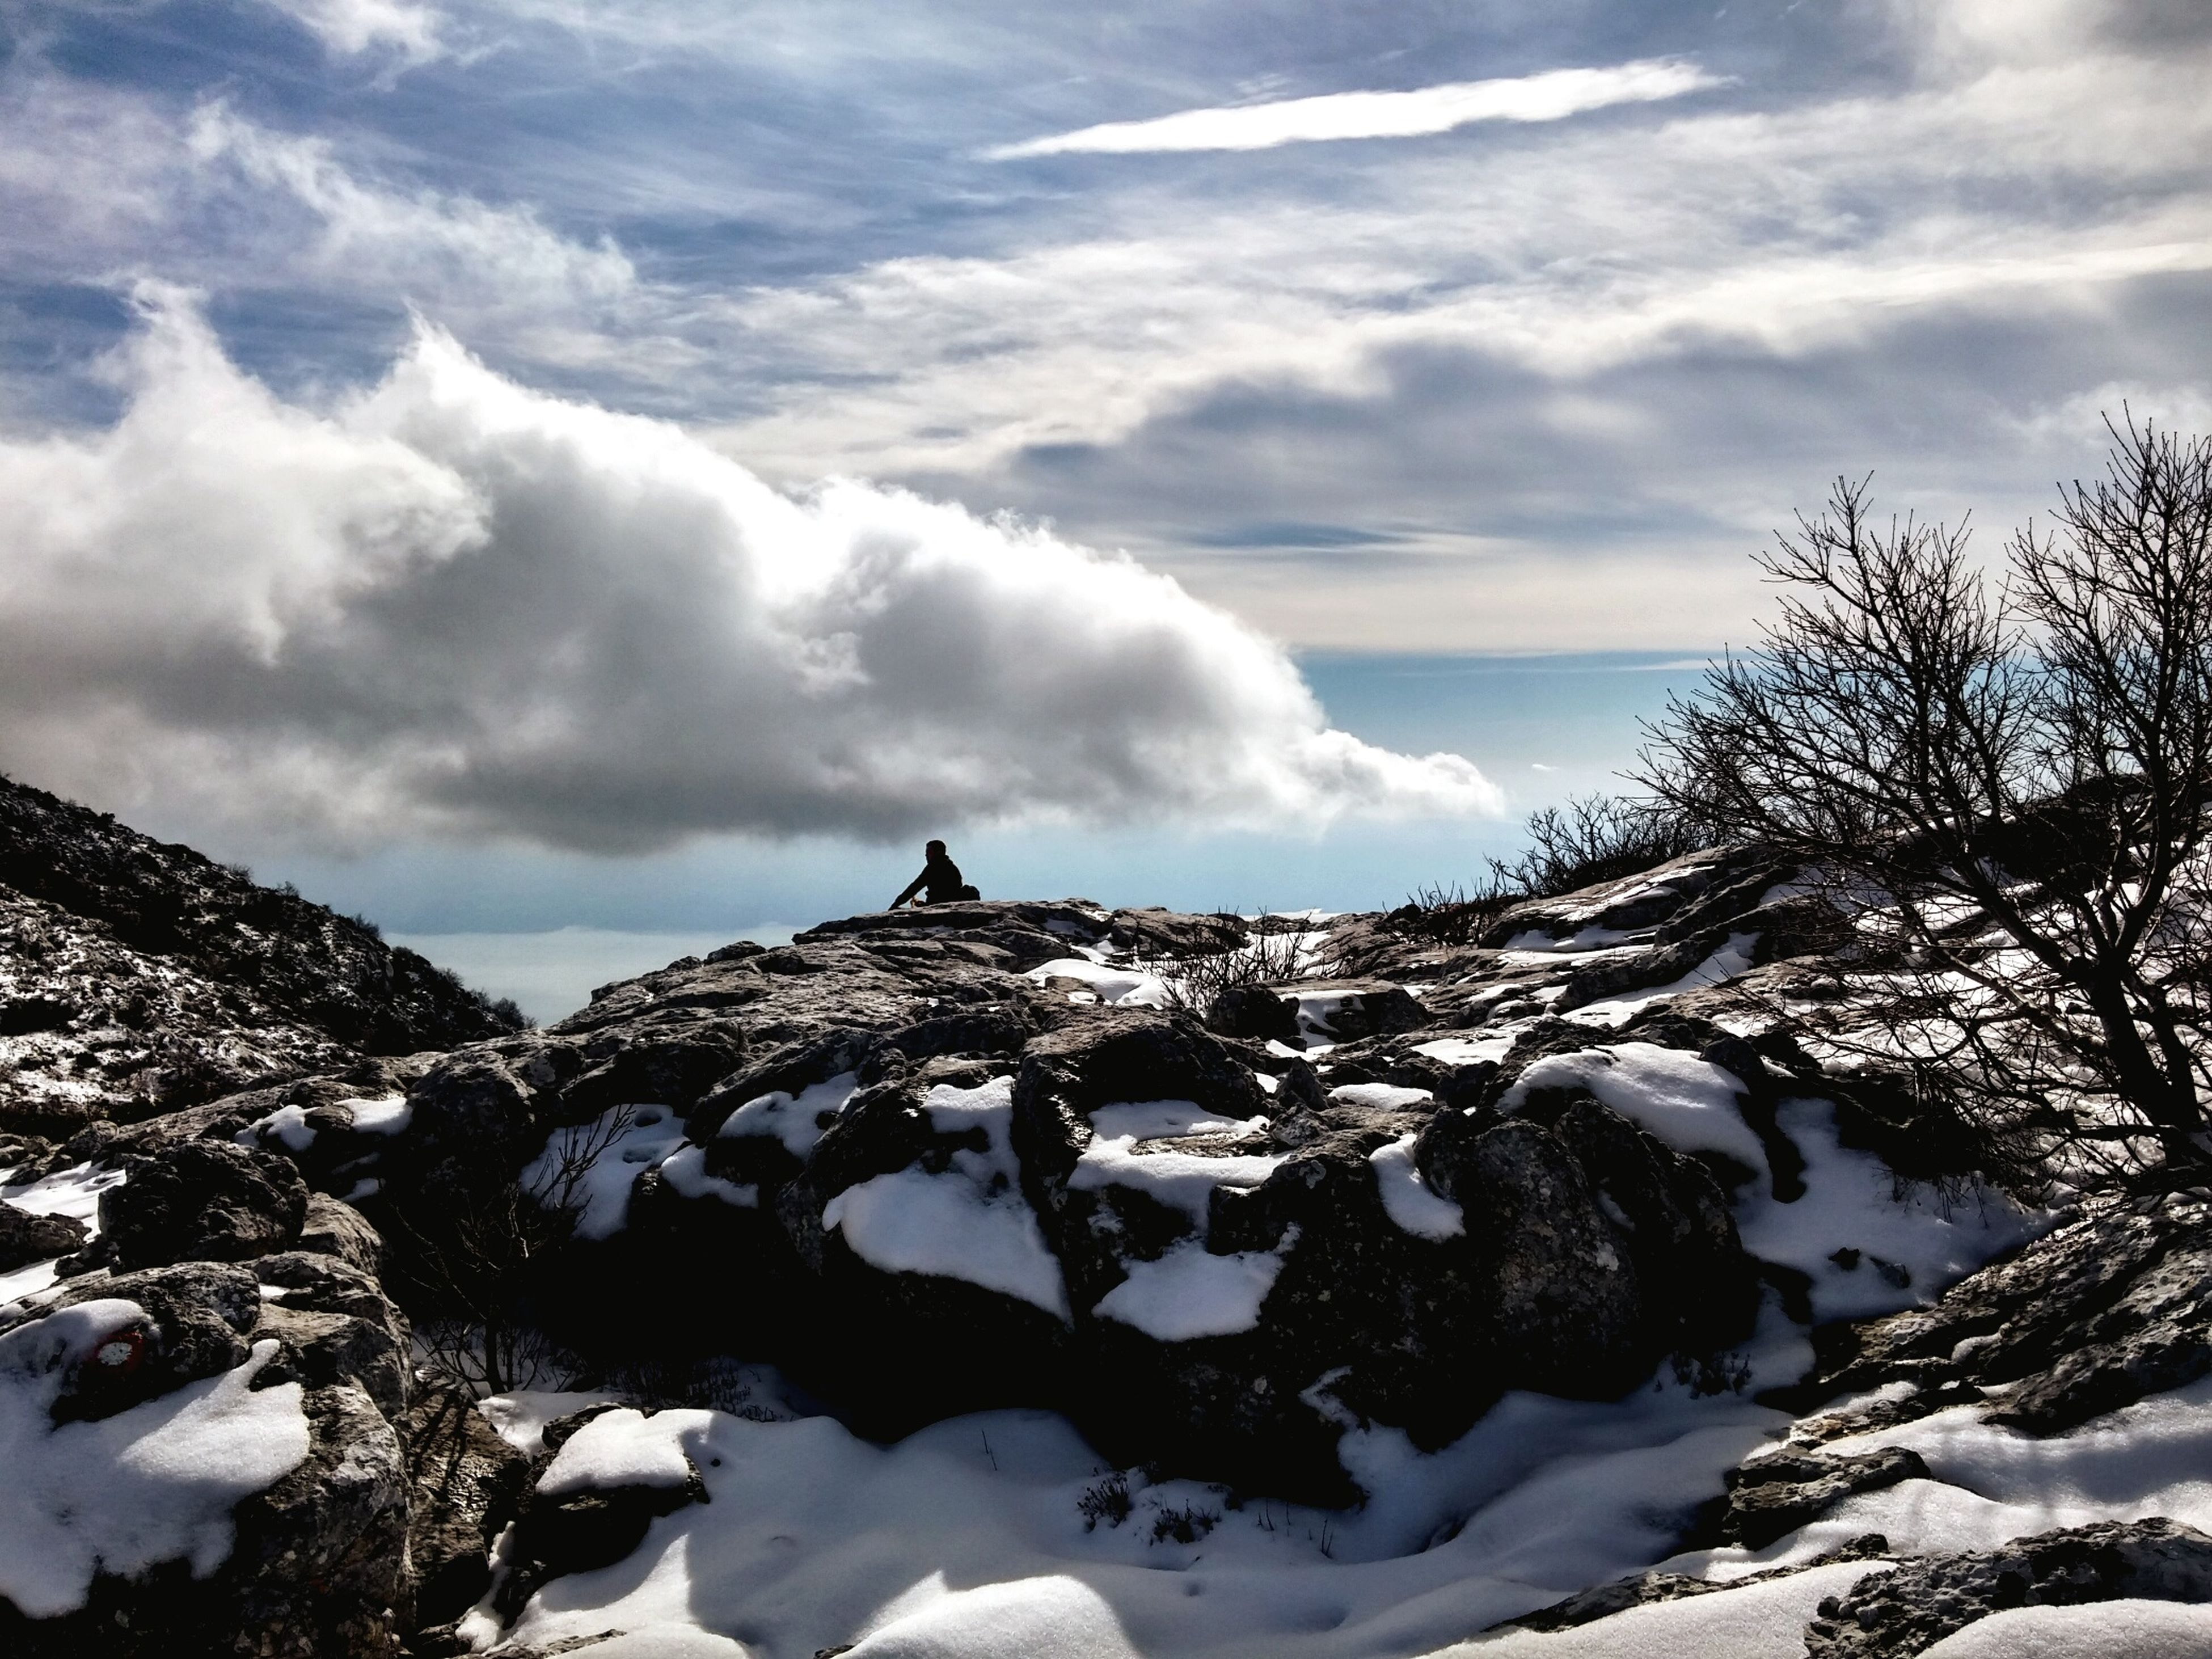 snow, winter, cold temperature, season, weather, sky, tranquil scene, mountain, tranquility, scenics, cloud - sky, landscape, beauty in nature, covering, snowcapped mountain, nature, mountain range, white color, frozen, cloud